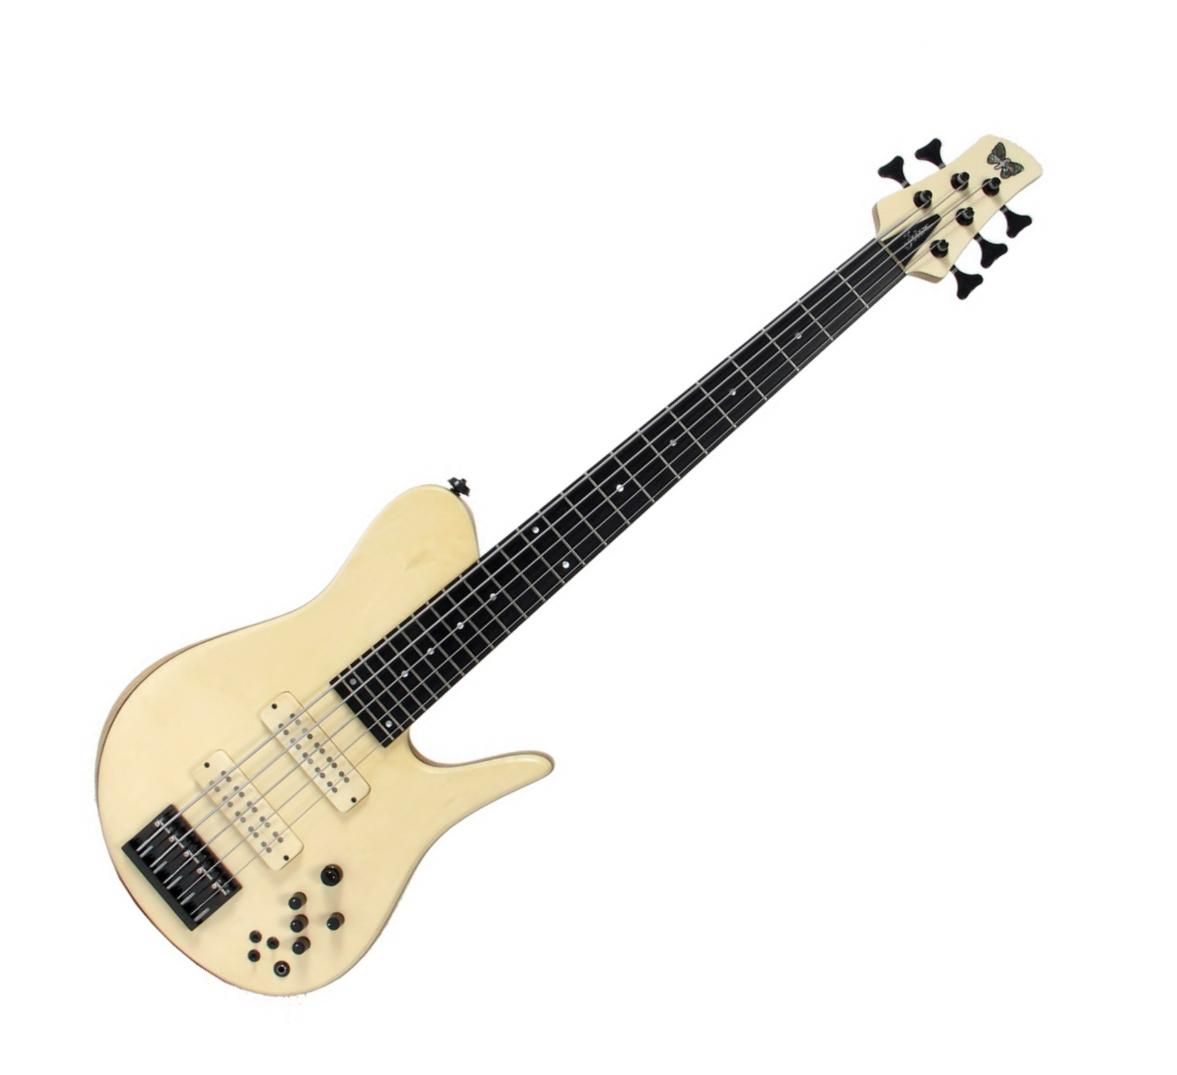 Bass Review For Bassist Fodera Imperial 5 Elite 5